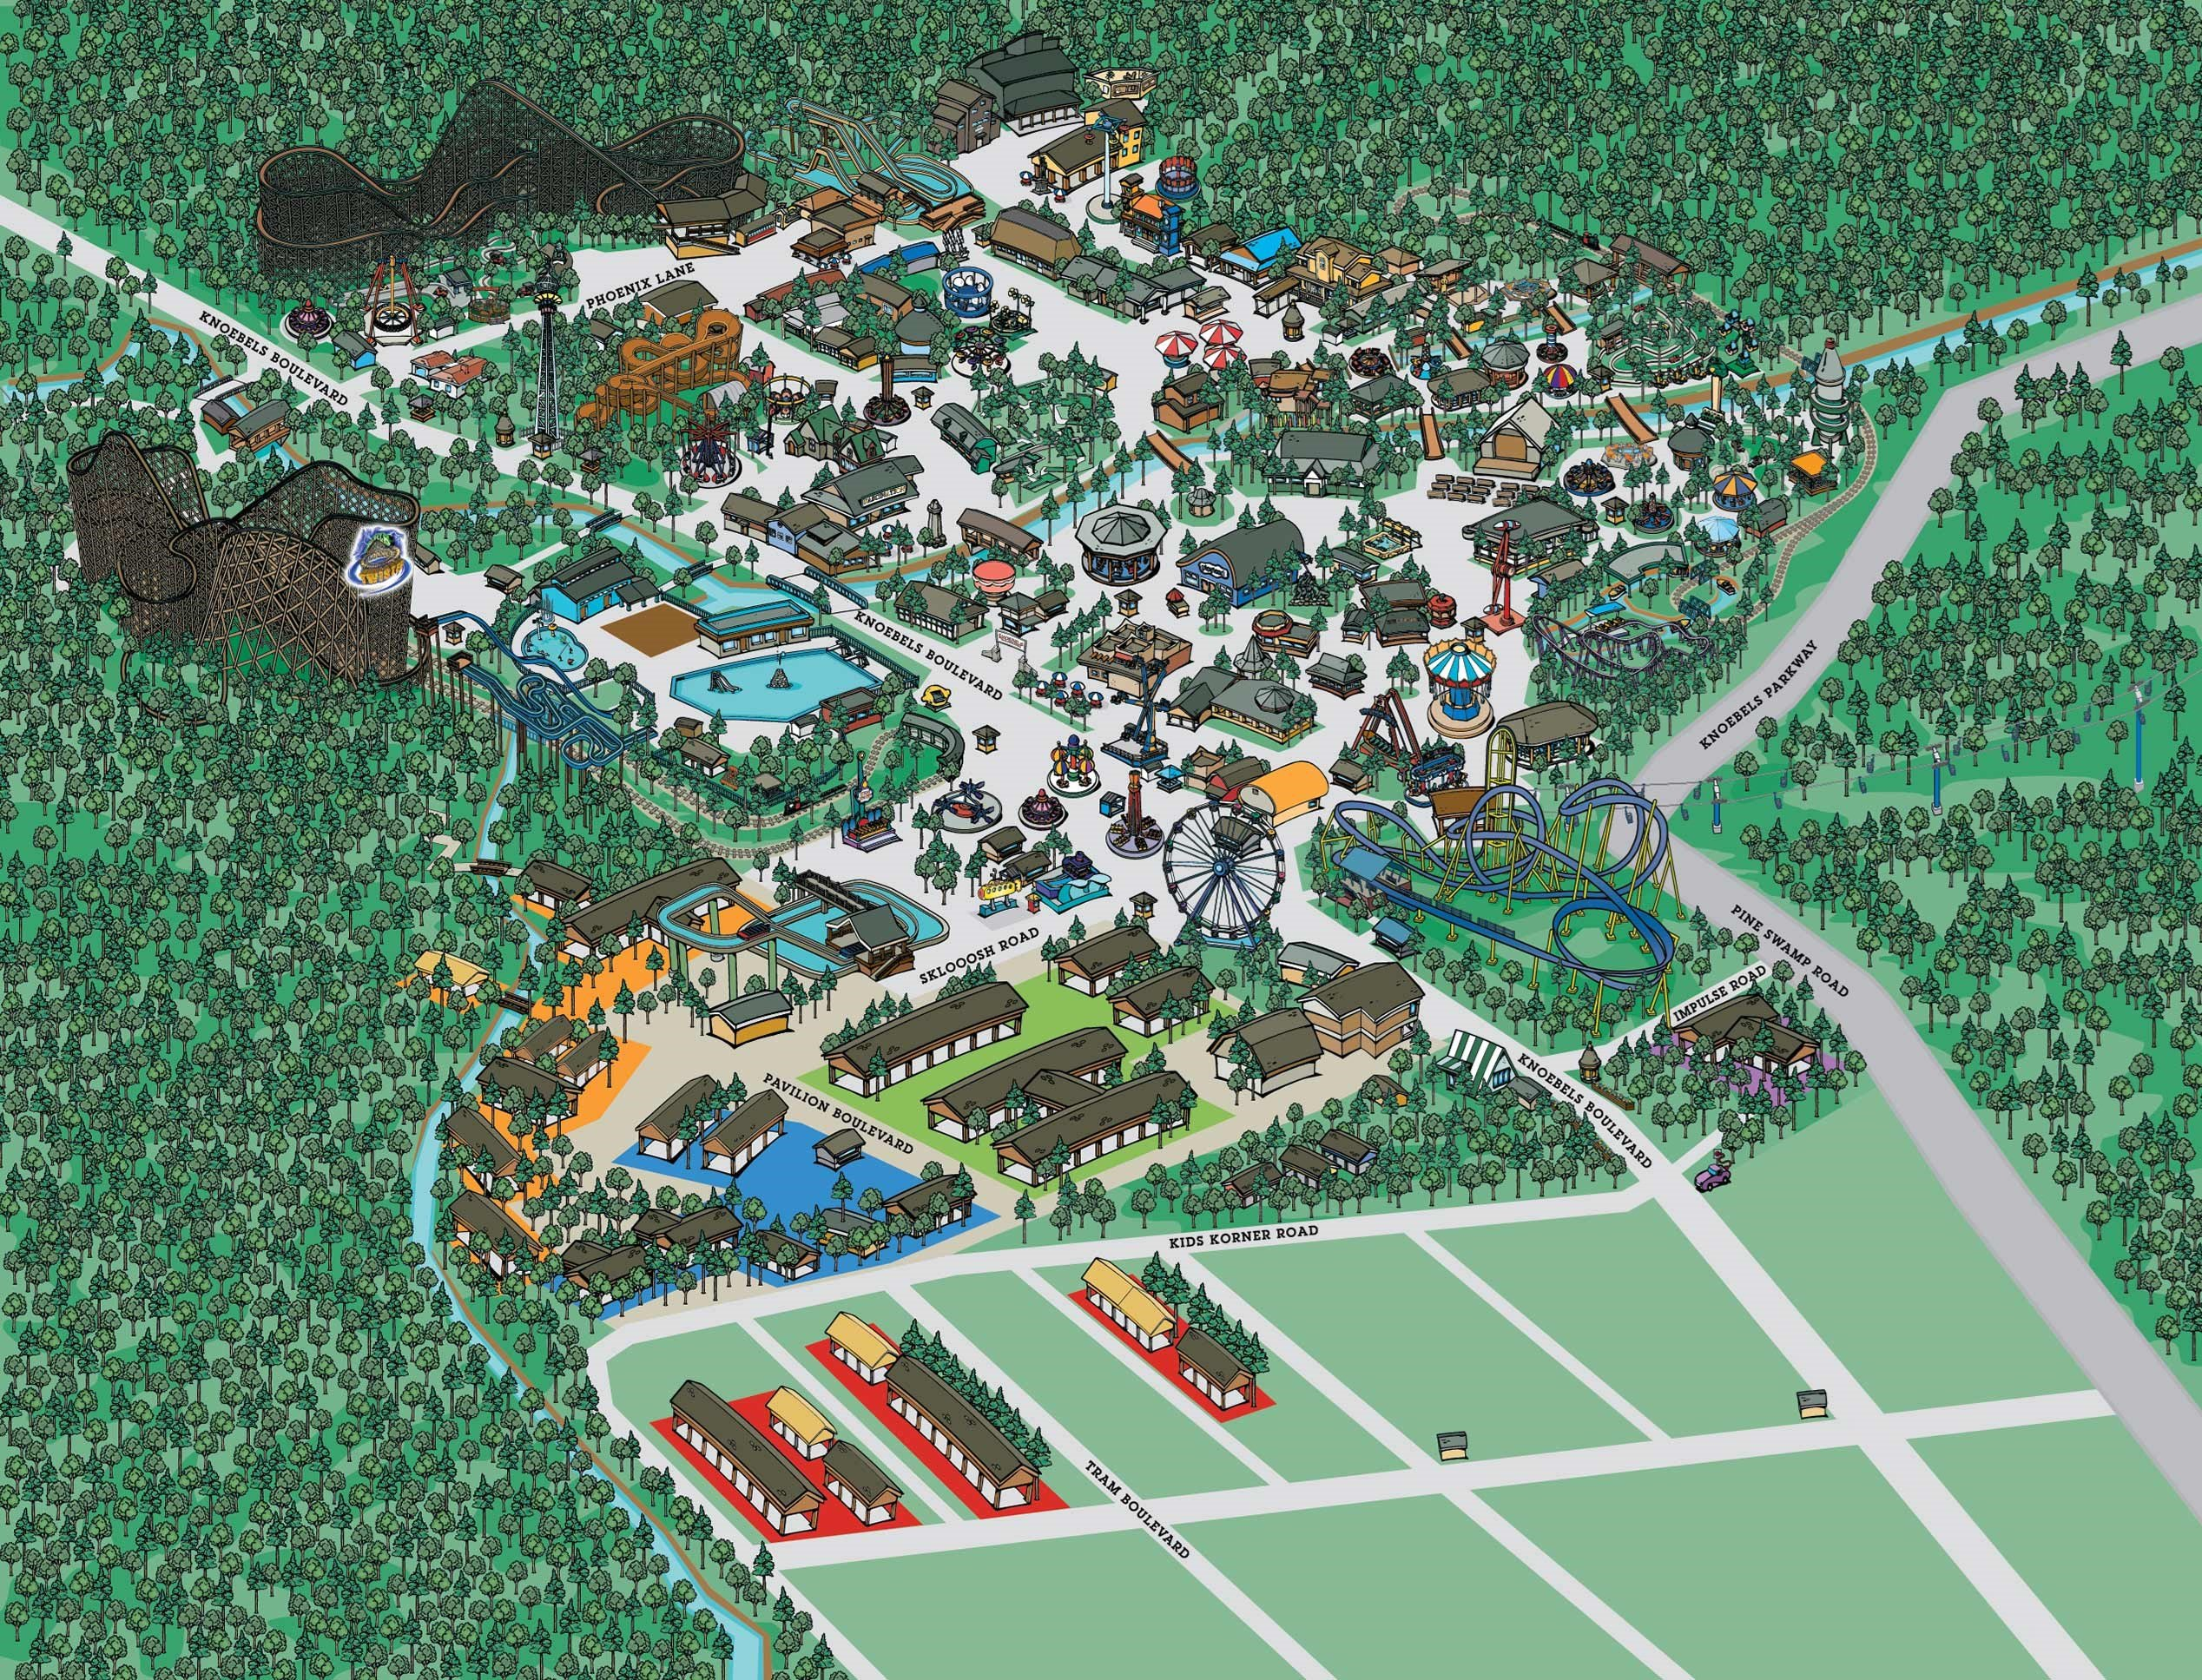 Park Map | Knoebels Amut Resort Knoebels Map on kennywood map, frontier city map, adventureland map, seabreeze map, carowinds map, fun spot map, blackpool pleasure beach map, great escape map, waldameer map, knott's berry farm map, ghost town in the sky map, michigan's adventure map, cedar point map, six flags map, sesame place map, kings dominion map, wild adventures map, kings island map, delgrosso's map, kiddieland map,